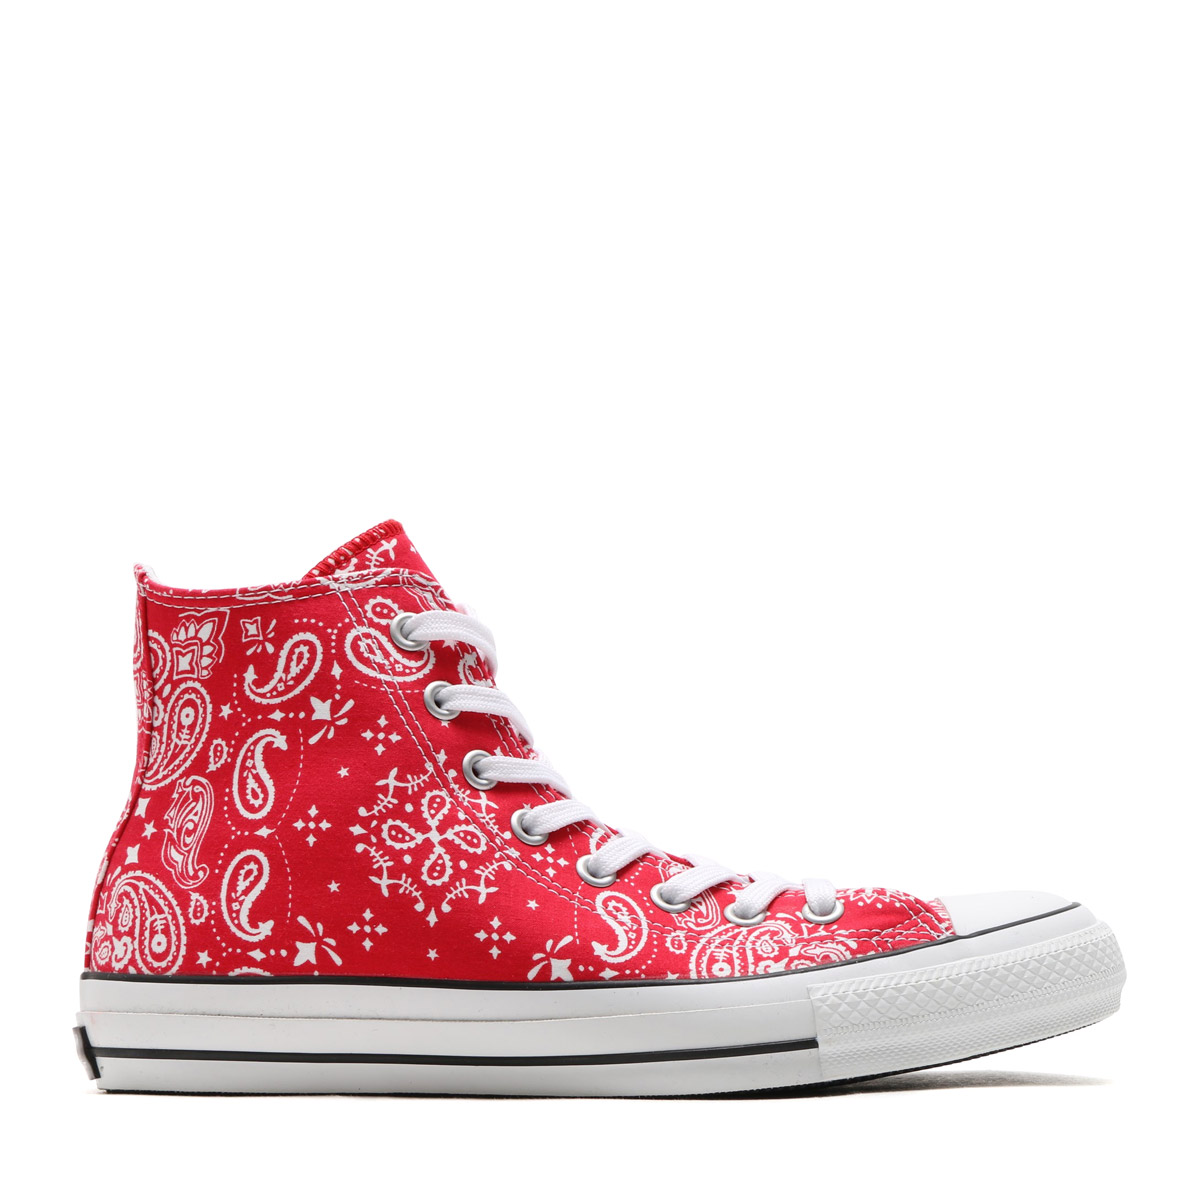 29d912c008b5 CONVERSE ALL STAR 100 BANDANA HI (Converse all-stars 100 bandana HI) (red)  17SS-I